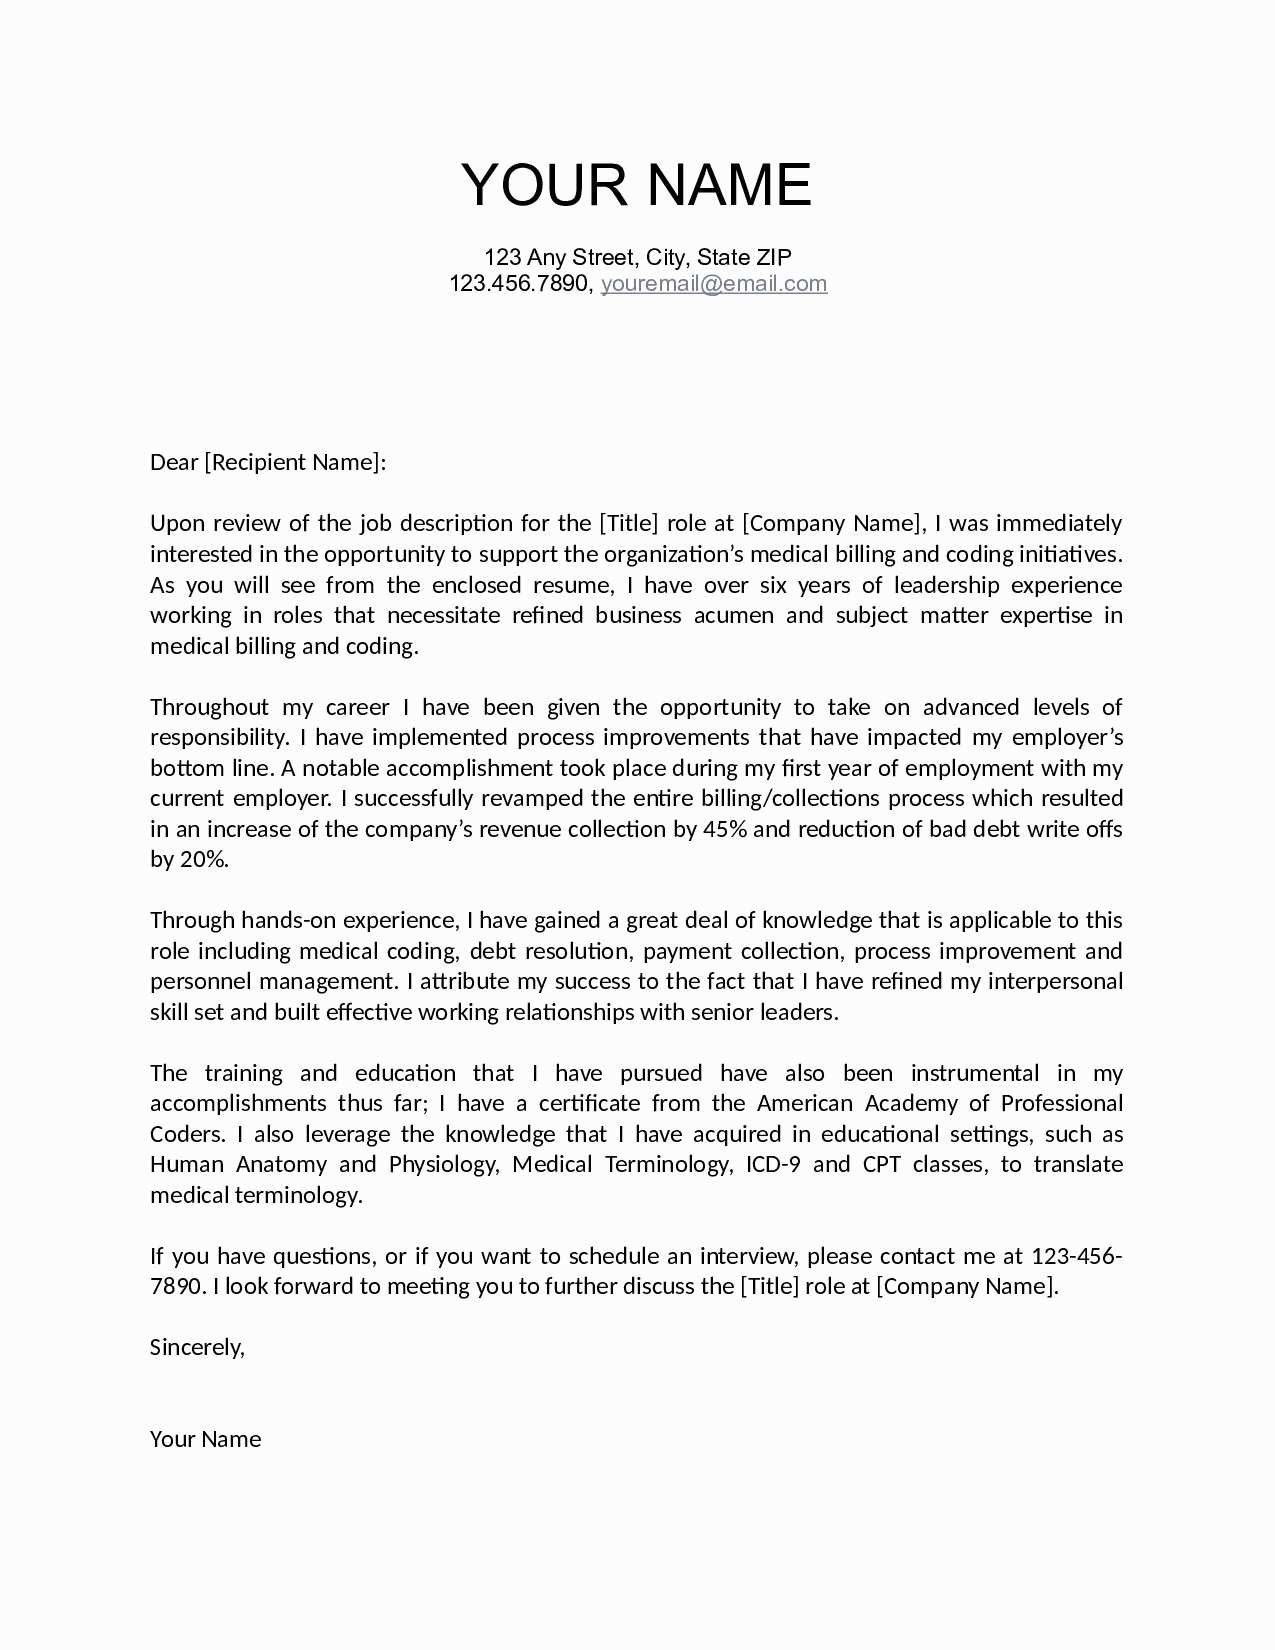 Work Reference Letter Template - Best Re Mendation Letter Template for Job